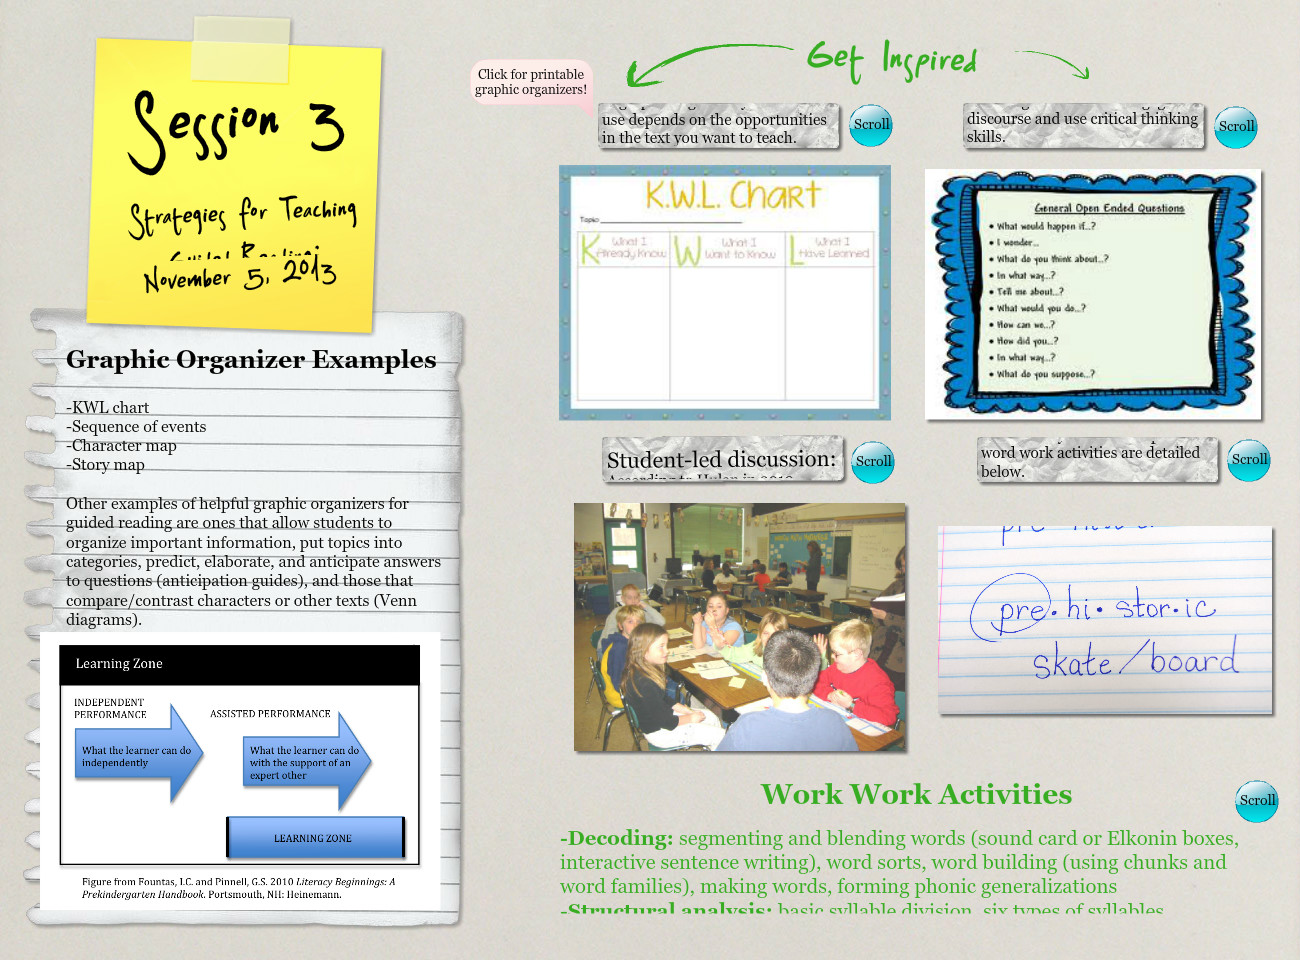 Session 3: Strategies for Teaching Guided Reading